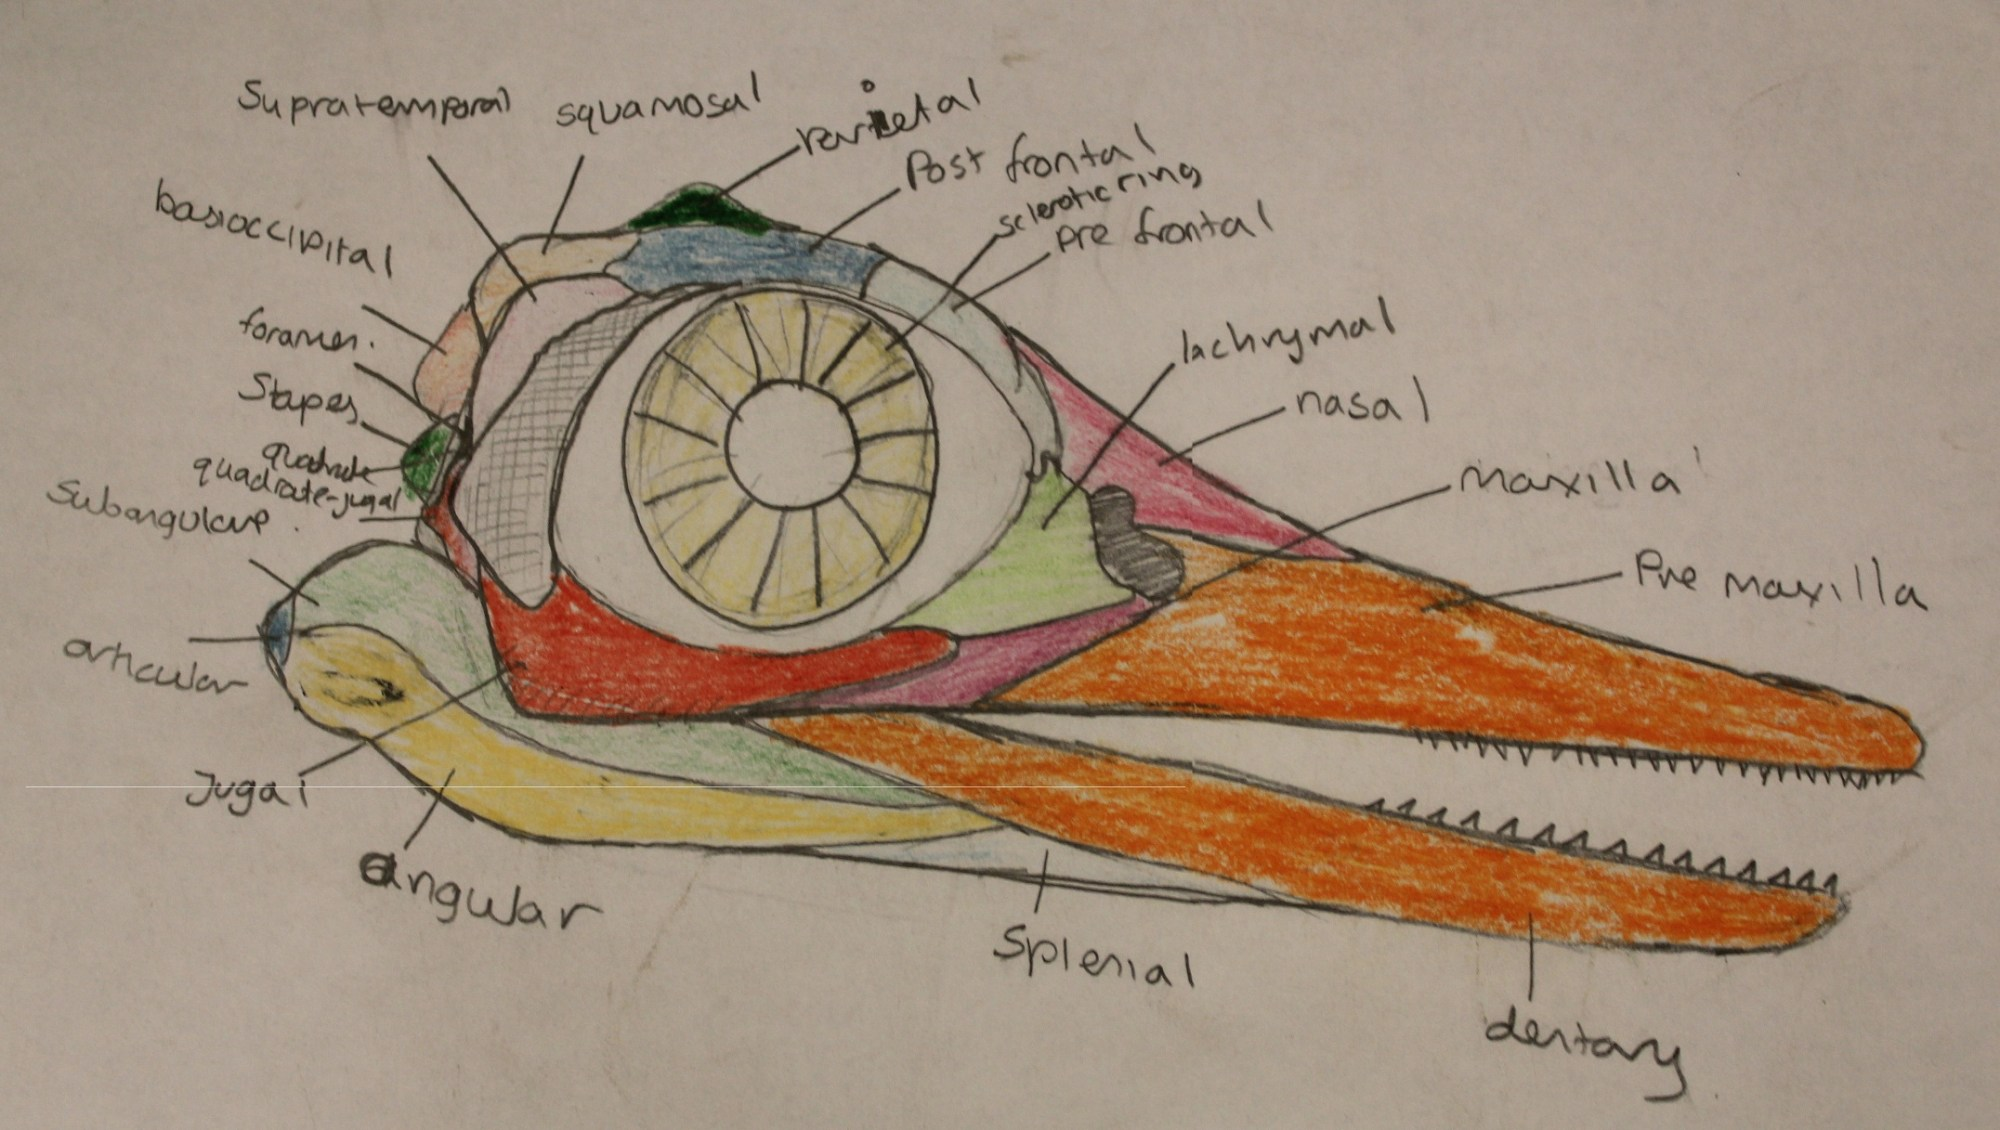 hight resolution of sketch of the typical ichthyosaur skull with all of the different bone elements represented by colors